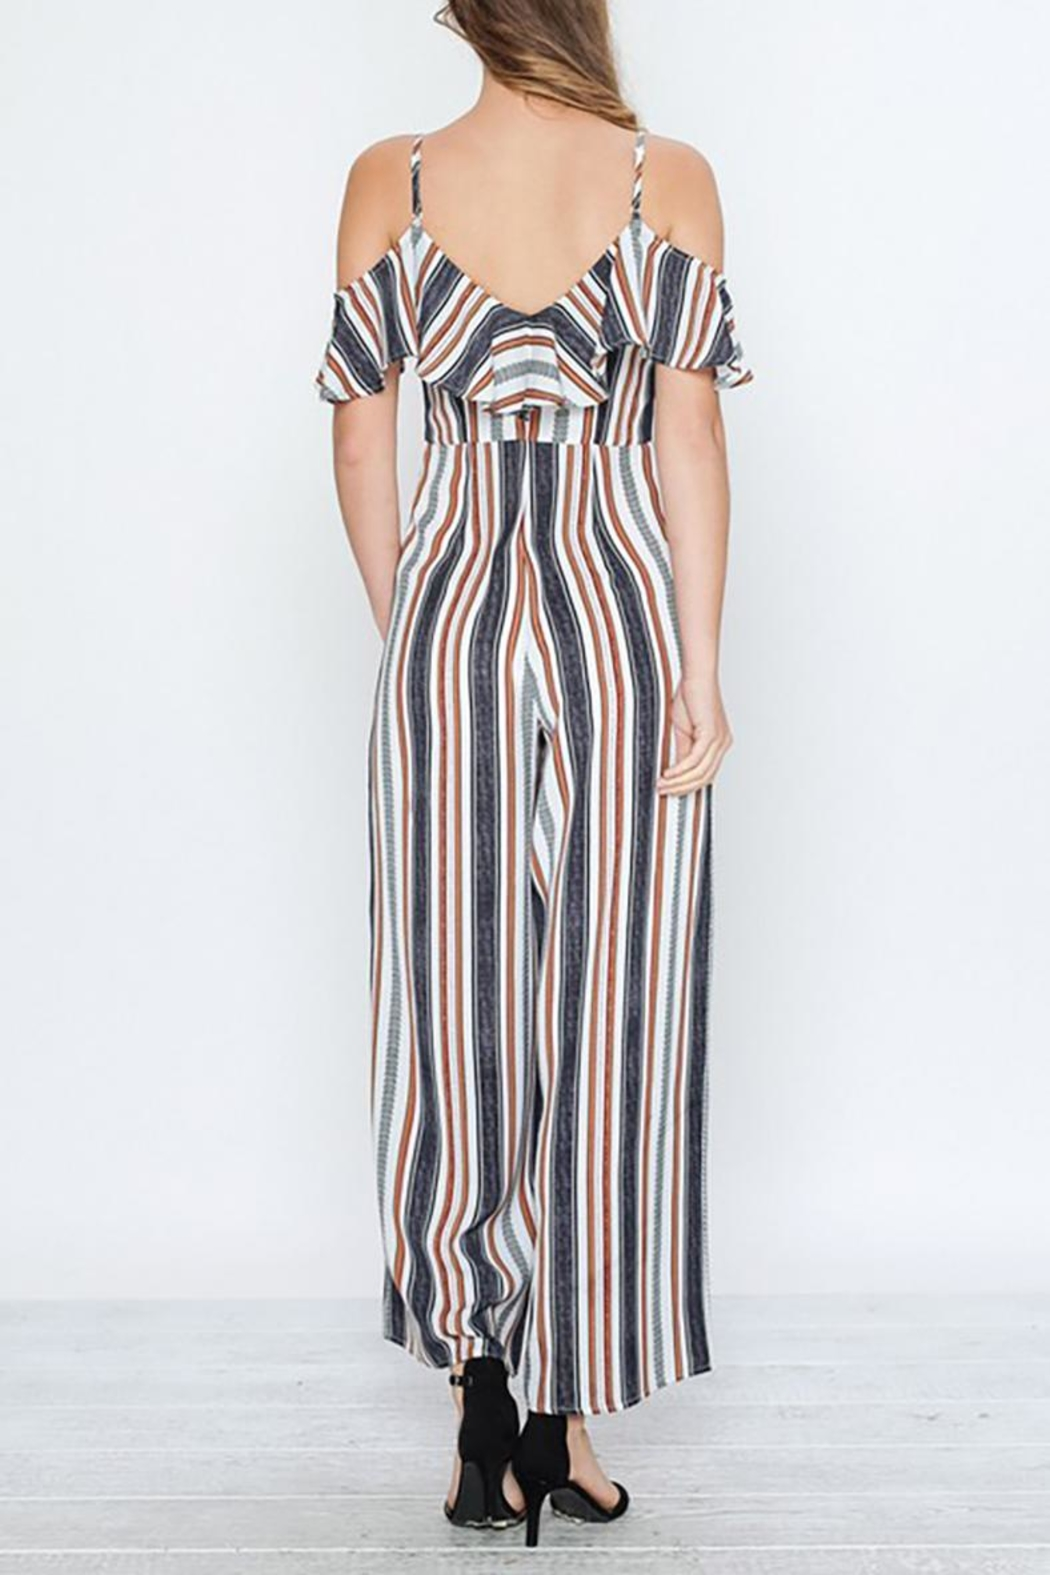 a17d6c81f94f5 Flying Tomato Striped Ruffle Jumpsuit from Virginia by mod soul ...